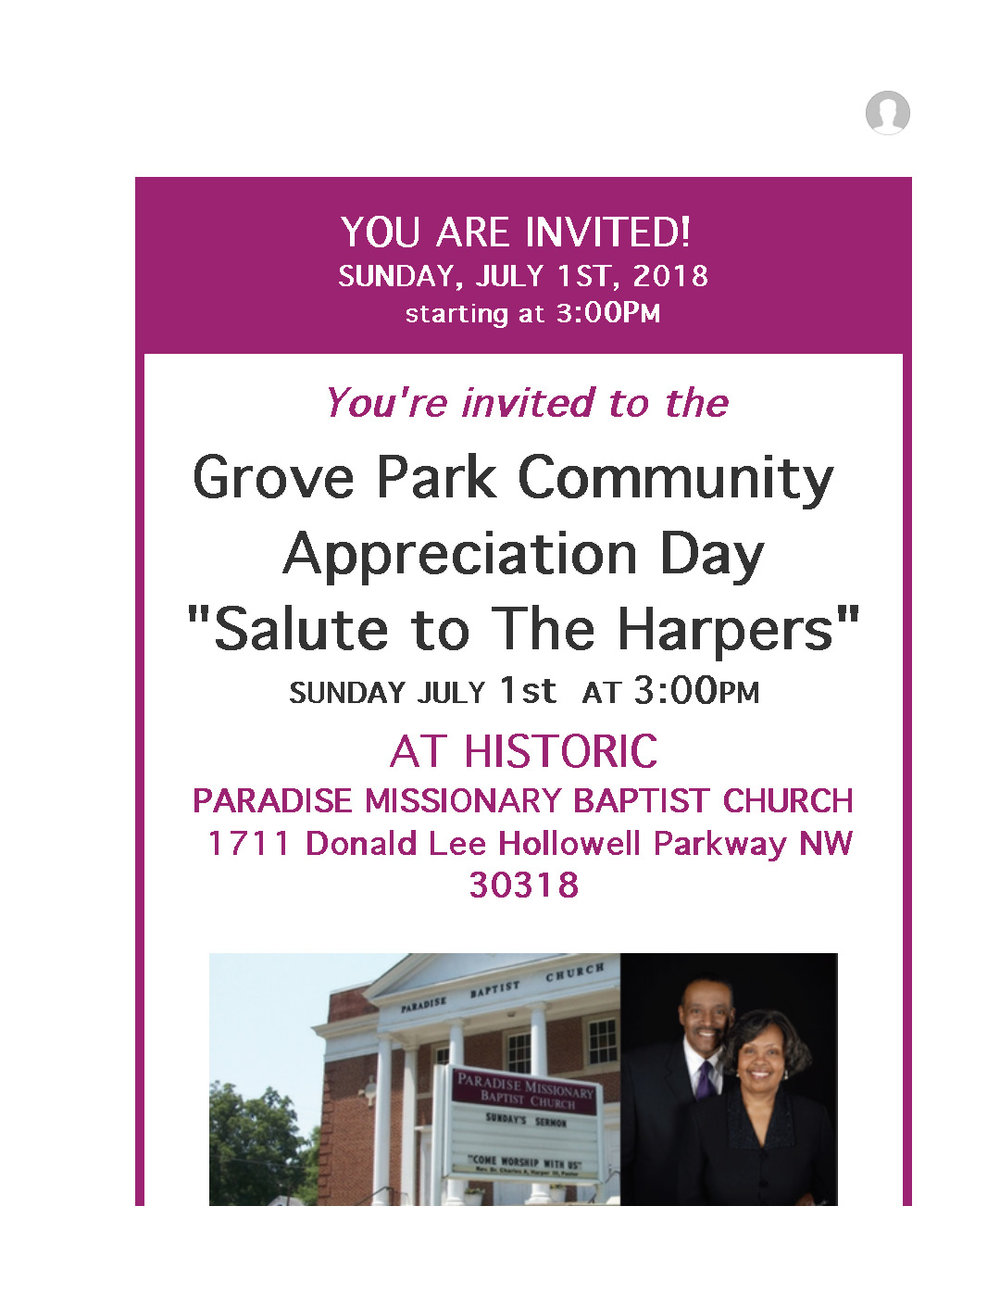 Join In Saluting The Harpers At Historic Paradise Baptist Church This Sunday July 1st_Page_1.jpg